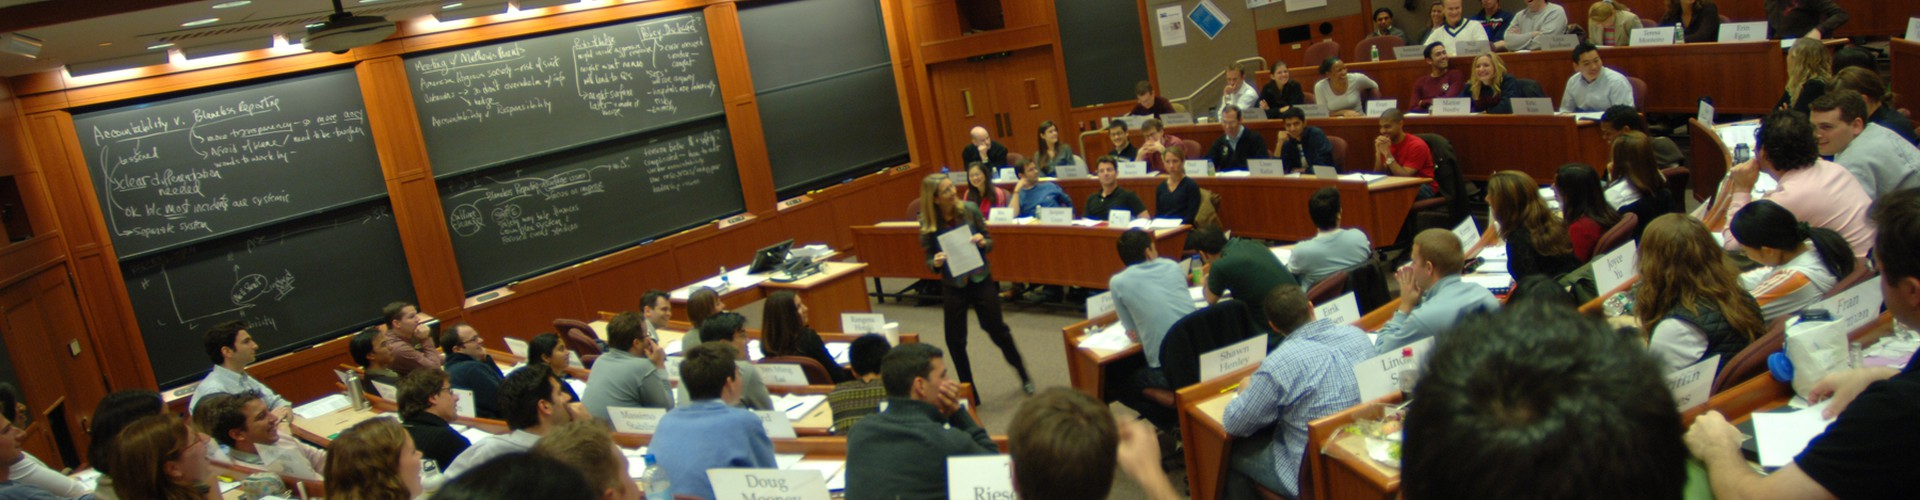 A Harvard Business School classroom (Credit: HBS1908 by CC 3.0 via Wikimedia Commons)